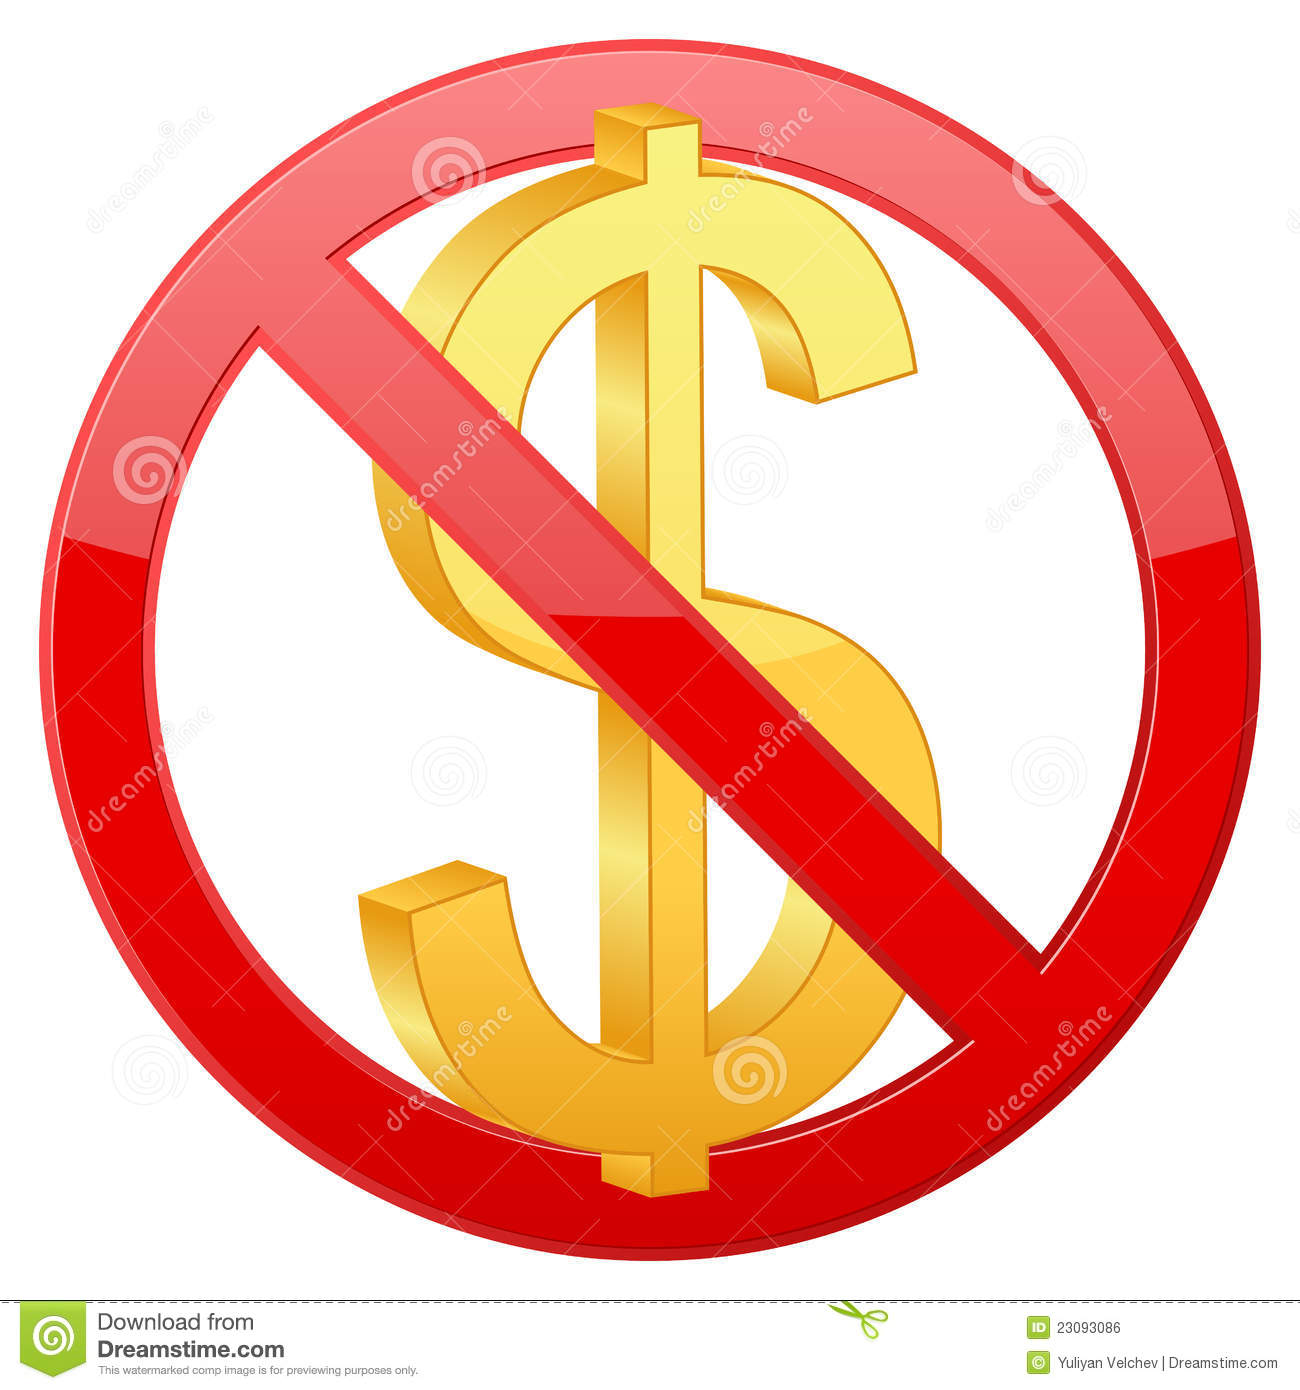 No Dollar Royalty Free Stock Image - Image: 23093086